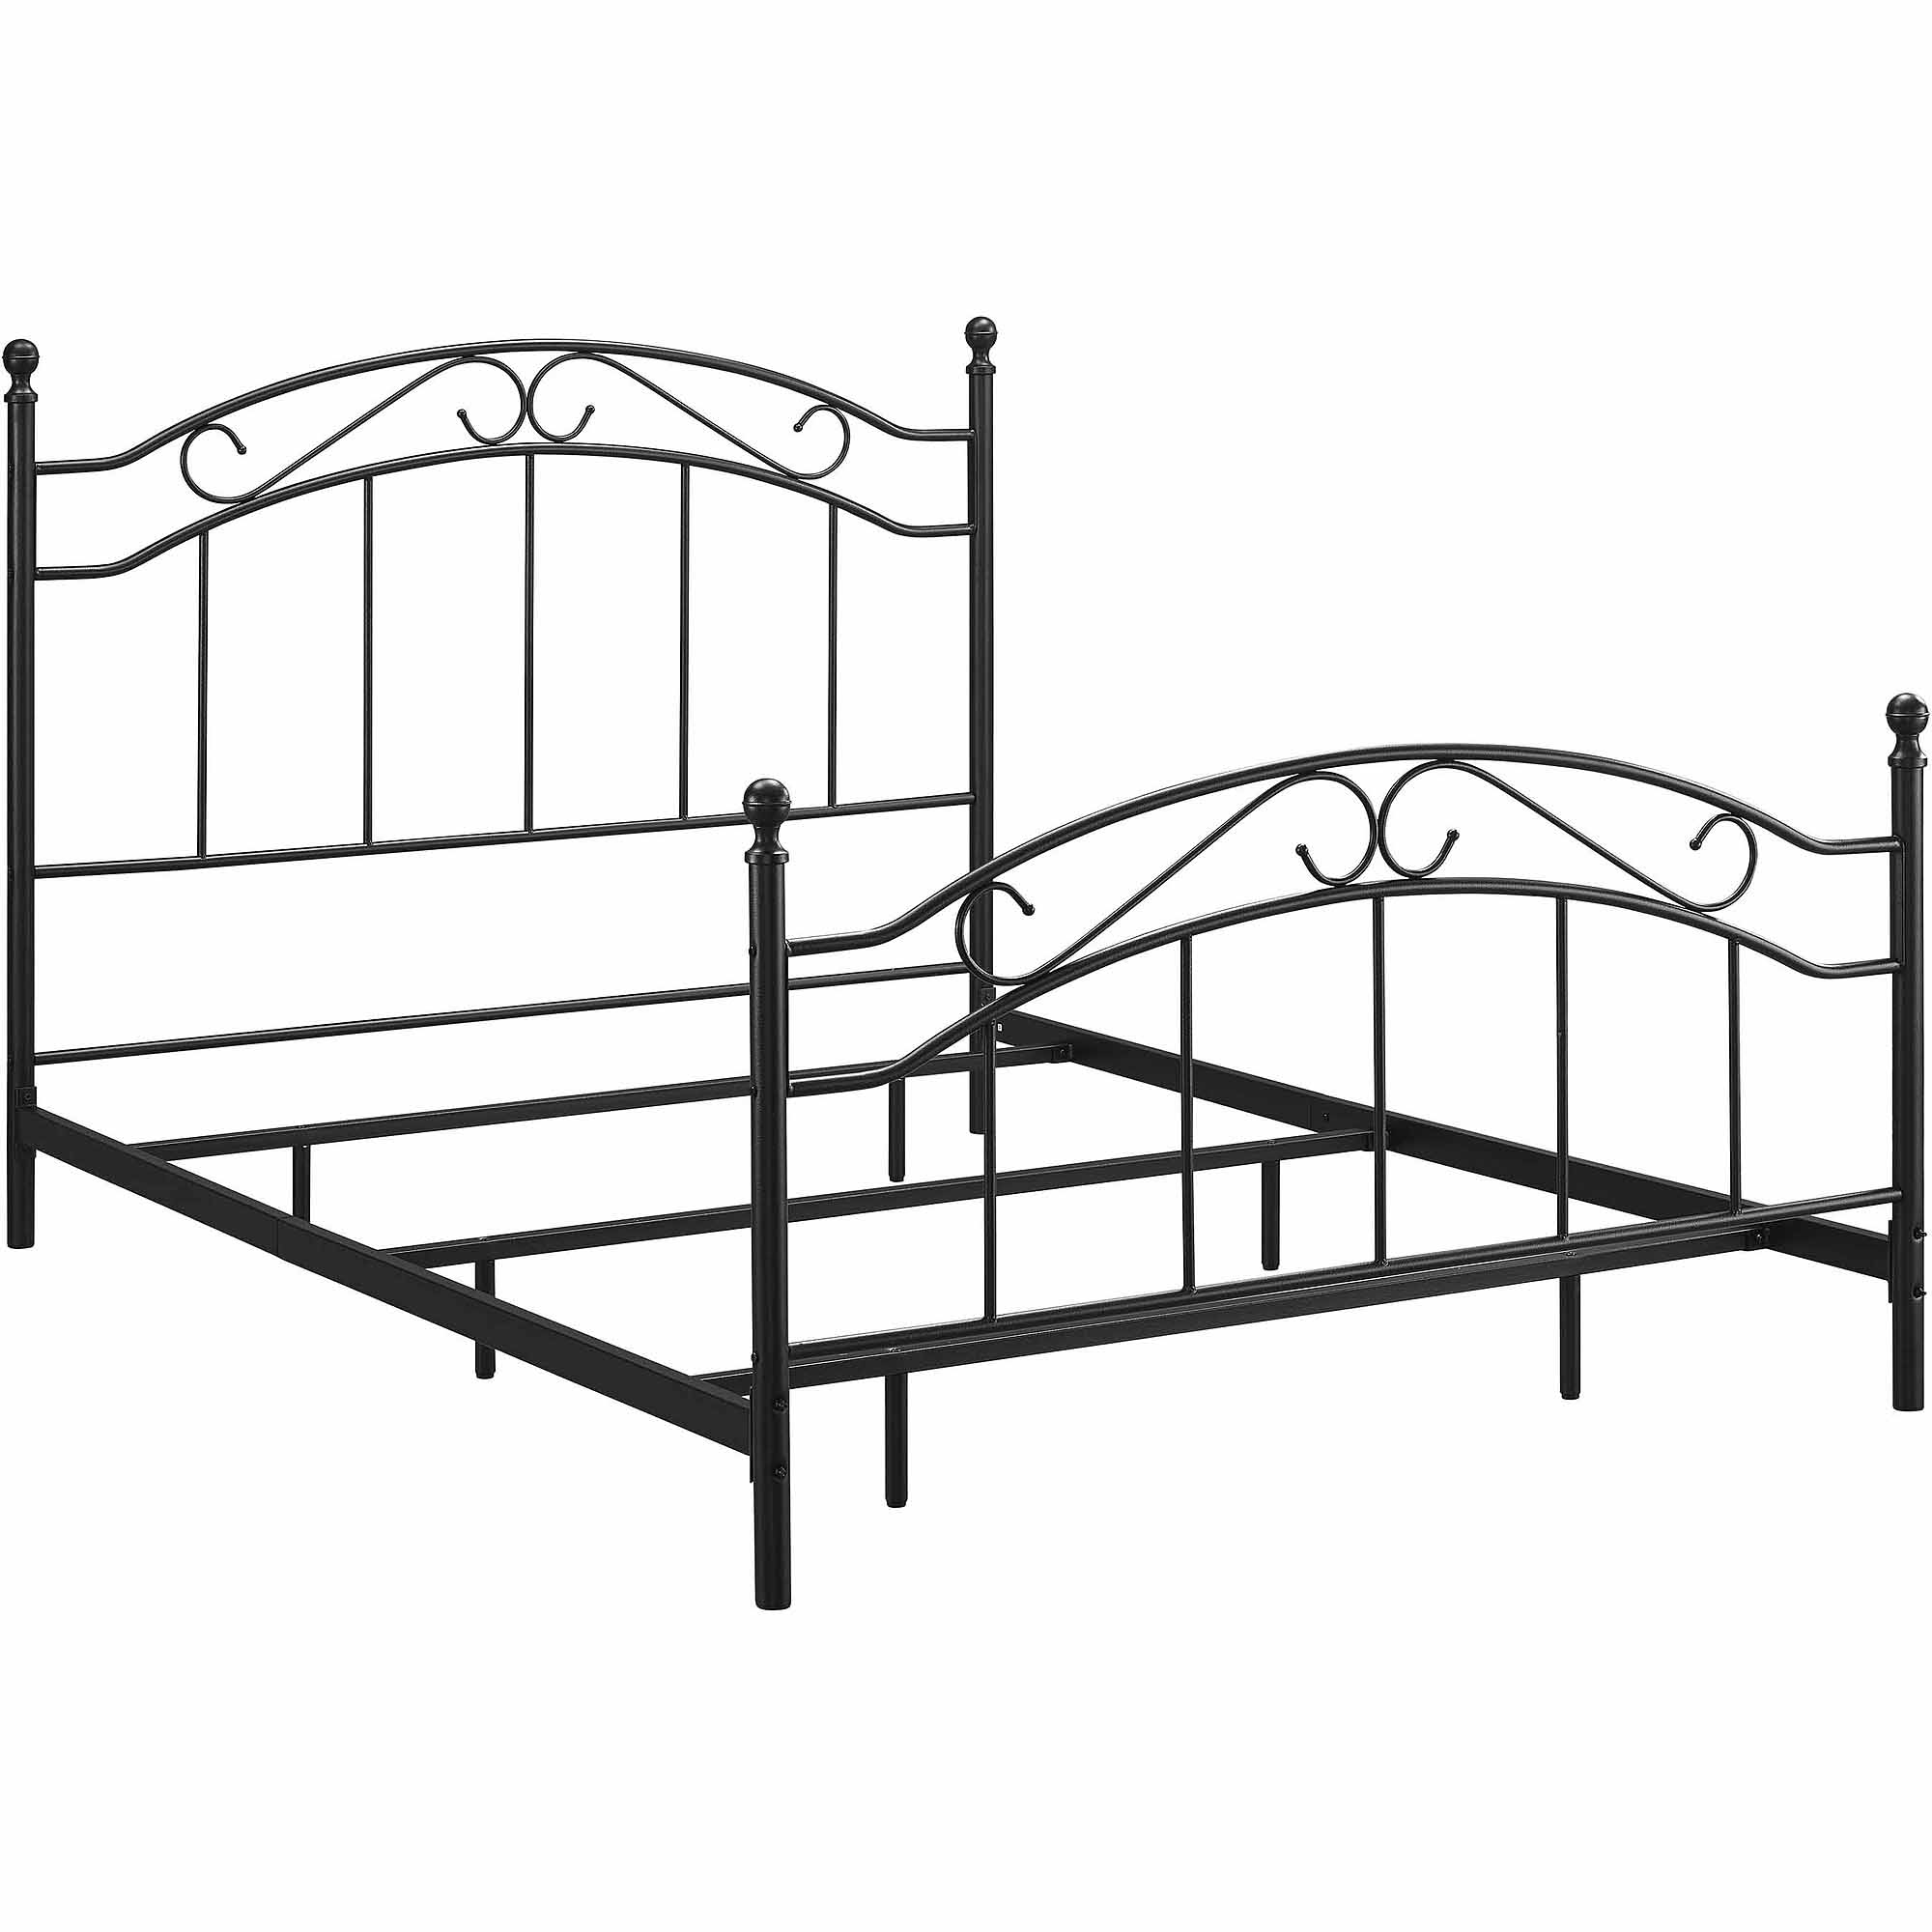 Metal Bed Frames Queen mainstays queen metal bed, black - walmart